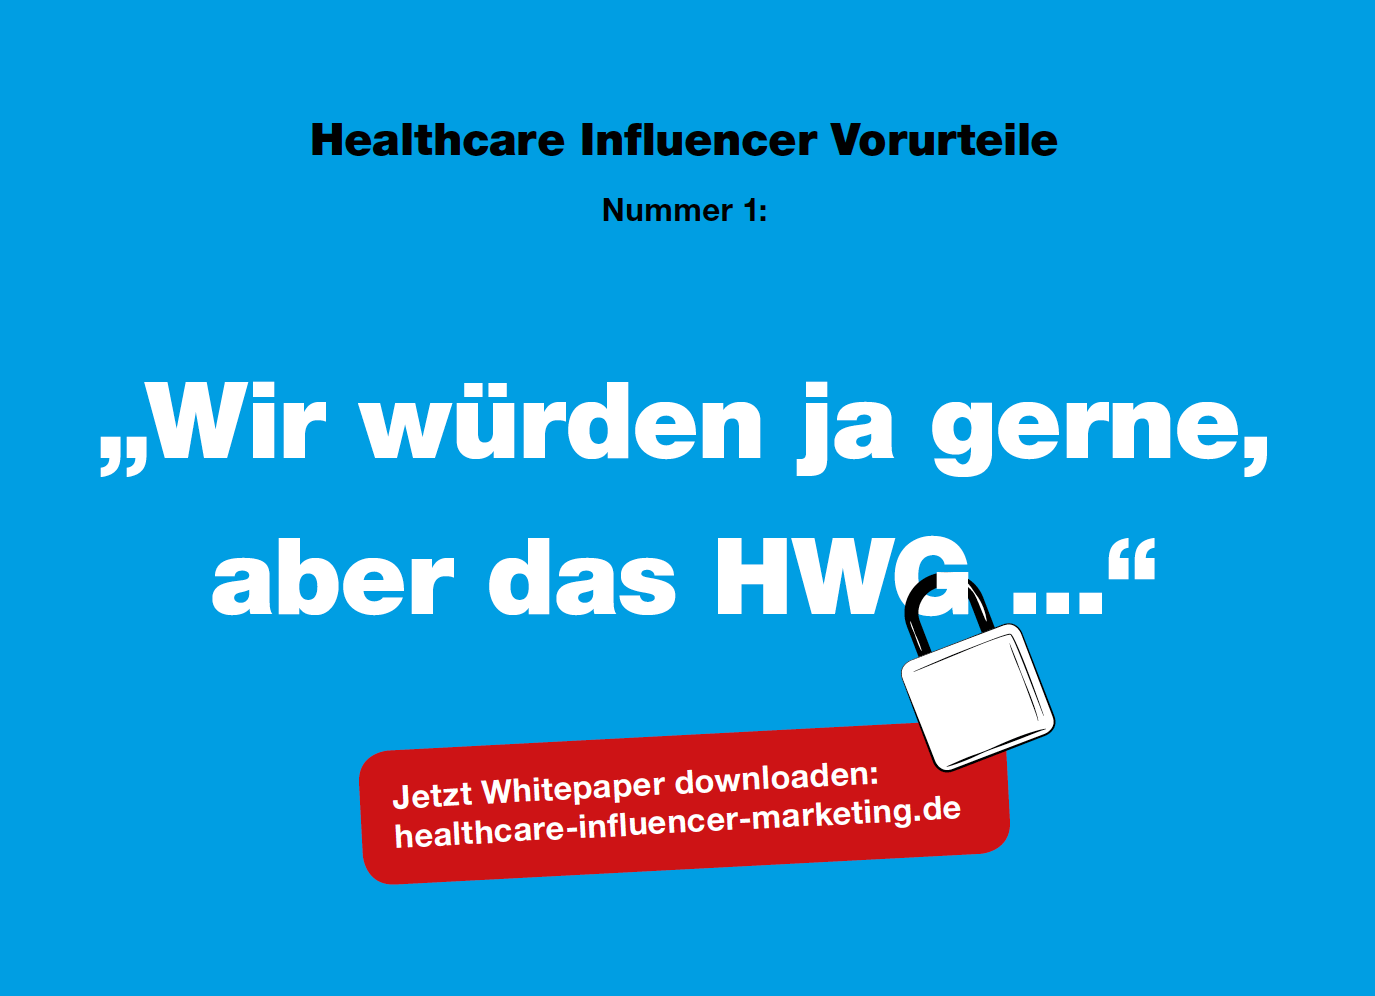 Healthcare-Influencer-Marketing-v1